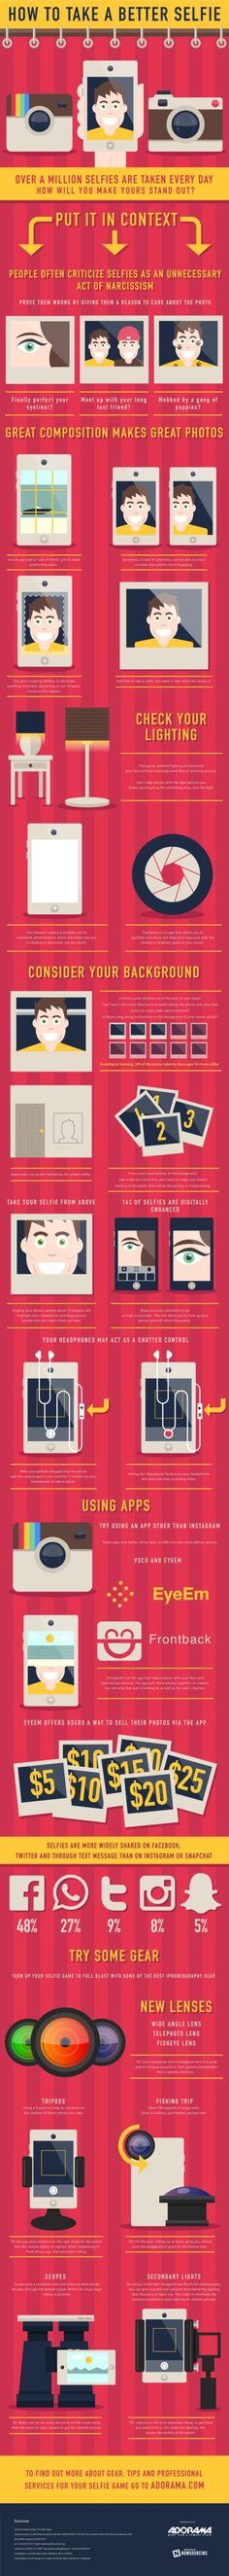 [Infographic] How to take a better selfie: